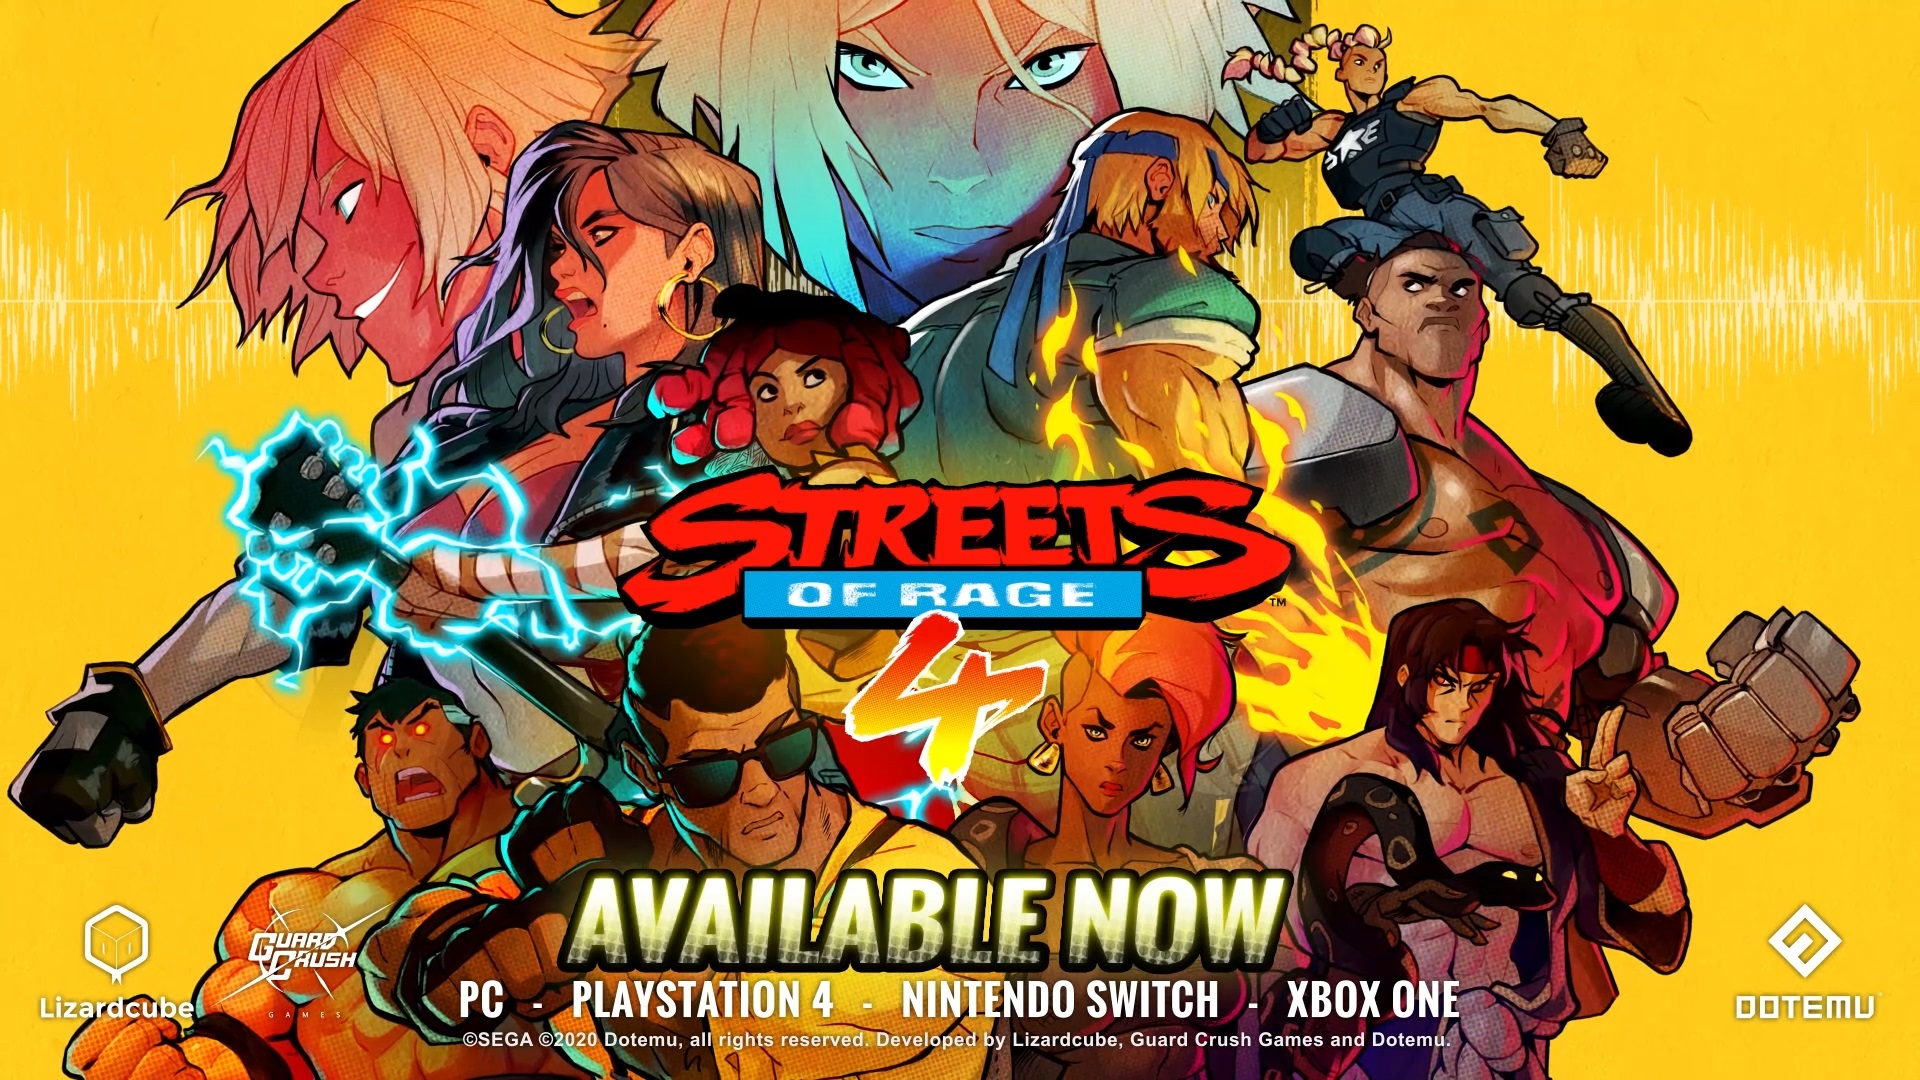 Streets of Rage 4 is now available on PC, Nintendo Switch, PlayStation 4, Xbox One